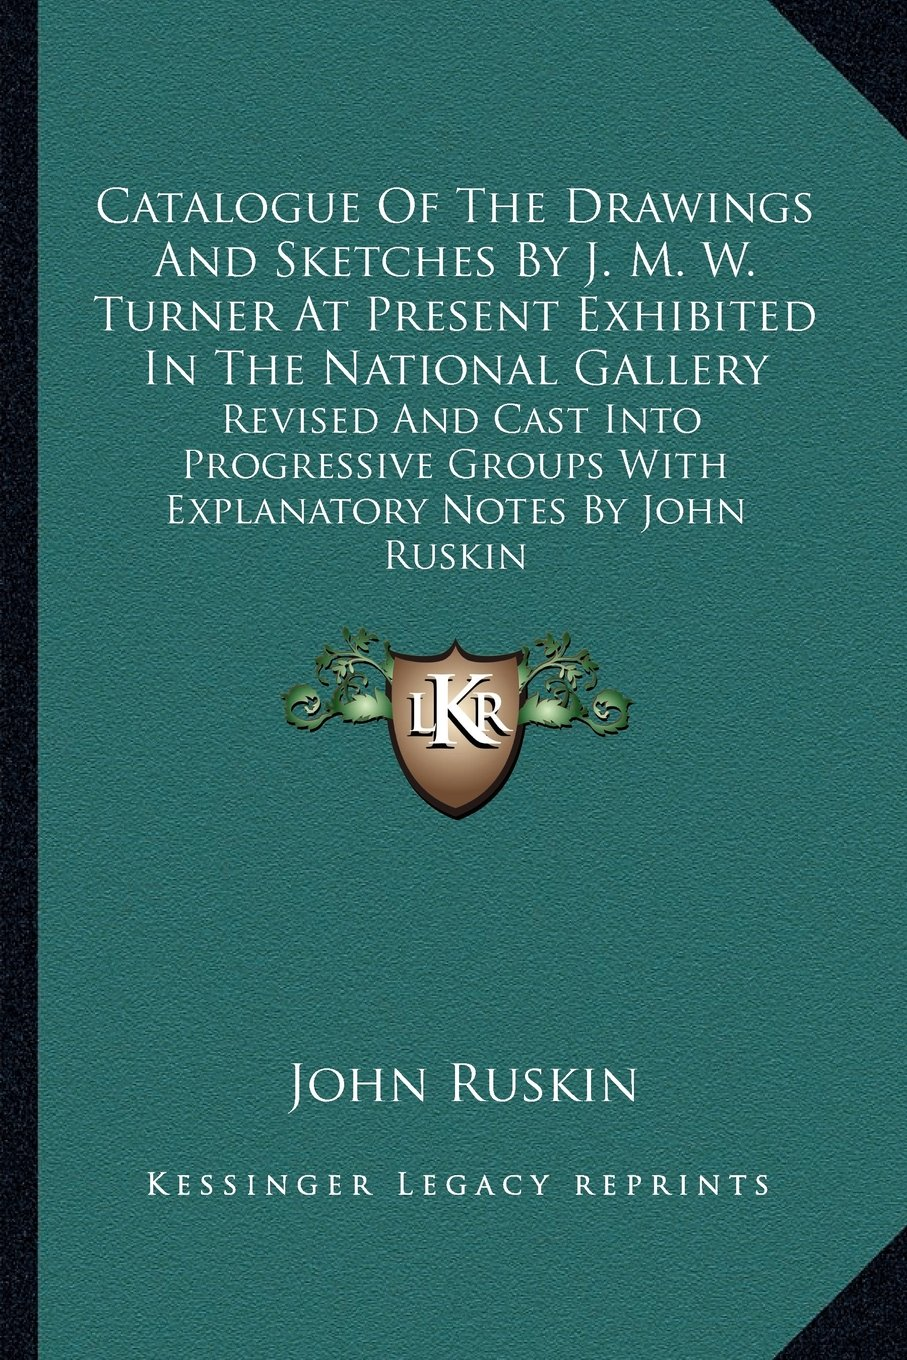 Download Catalogue Of The Drawings And Sketches By J. M. W. Turner At Present Exhibited In The National Gallery: Revised And Cast Into Progressive Groups With Explanatory Notes By John Ruskin pdf epub